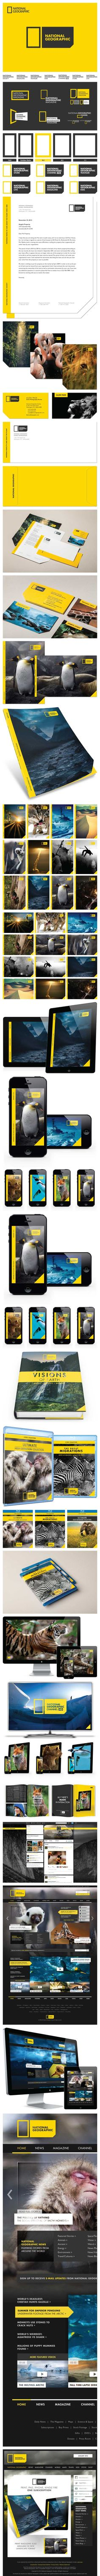 National Geographic Rebrand by Justin Marimon